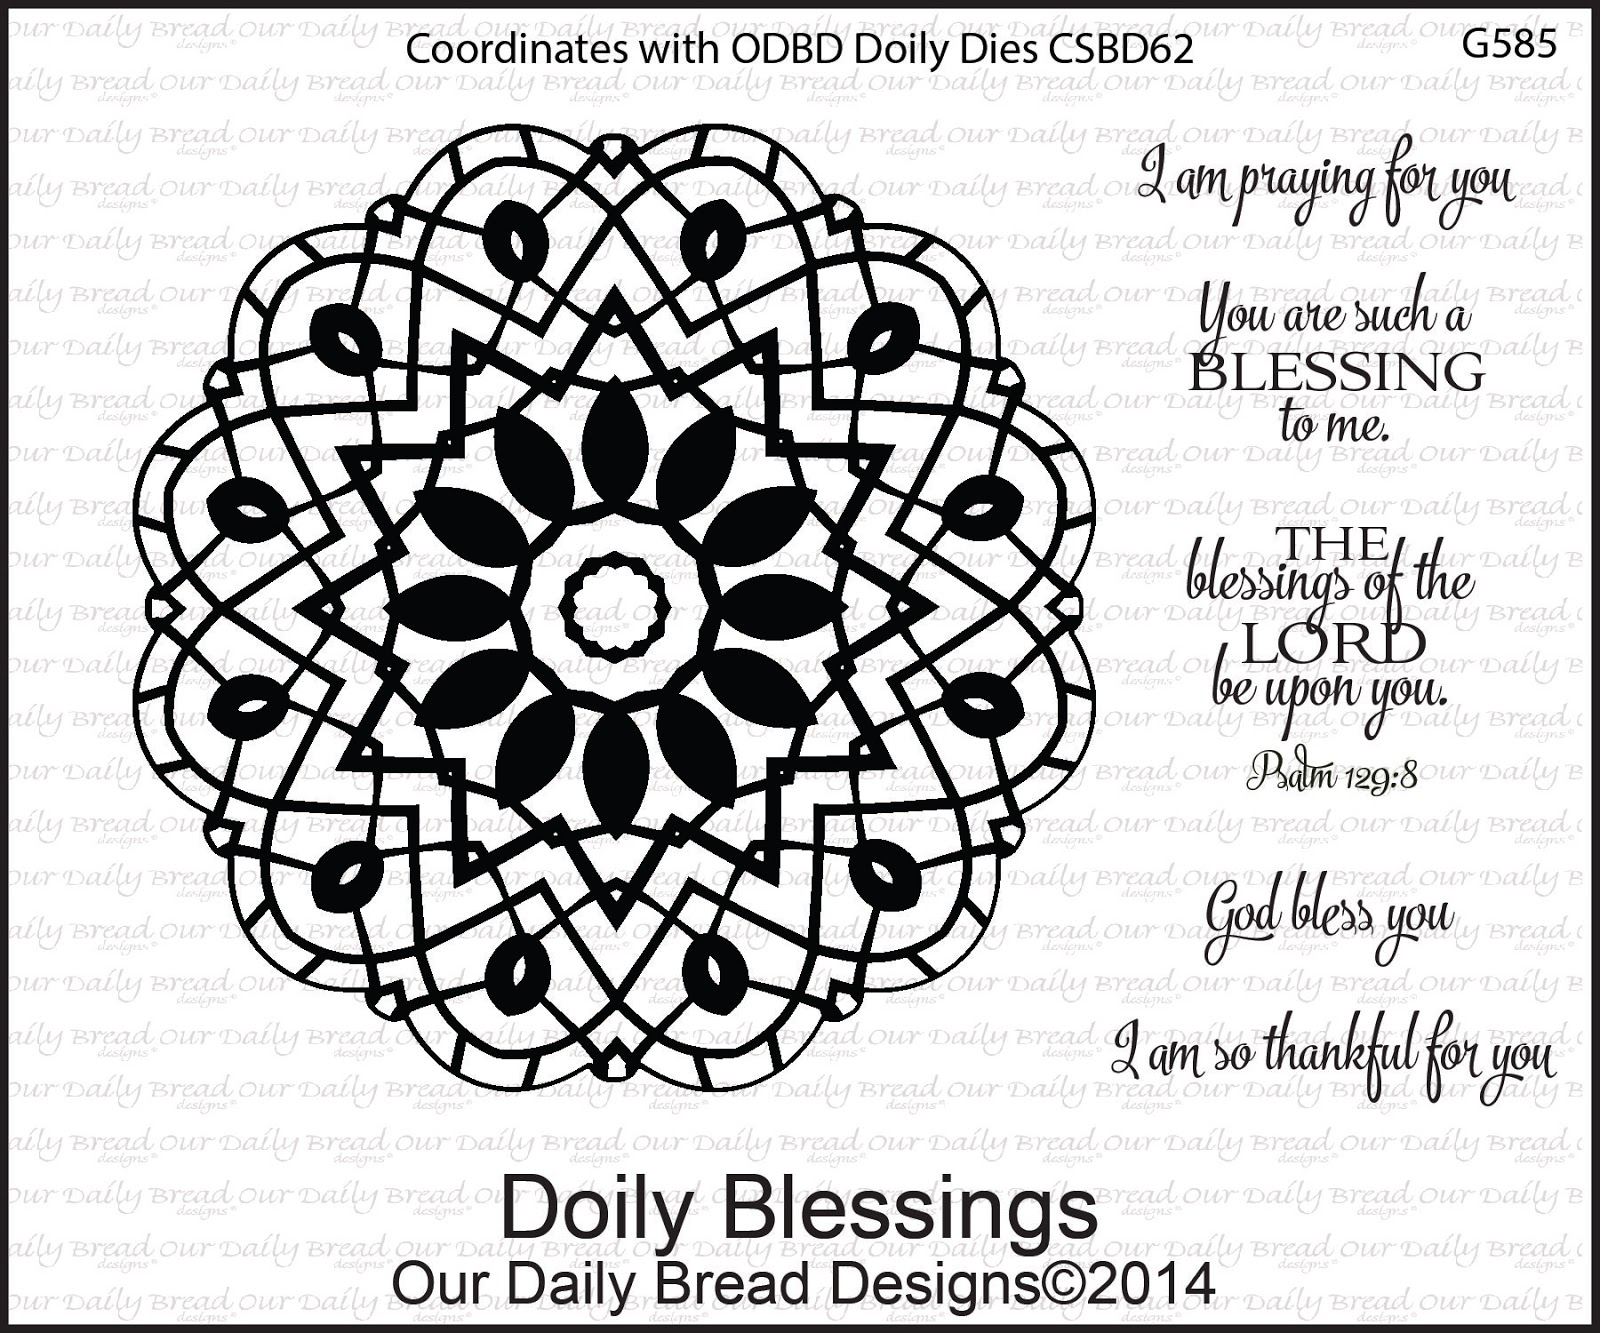 Our Daily Bread designs Blog: September New Releases!